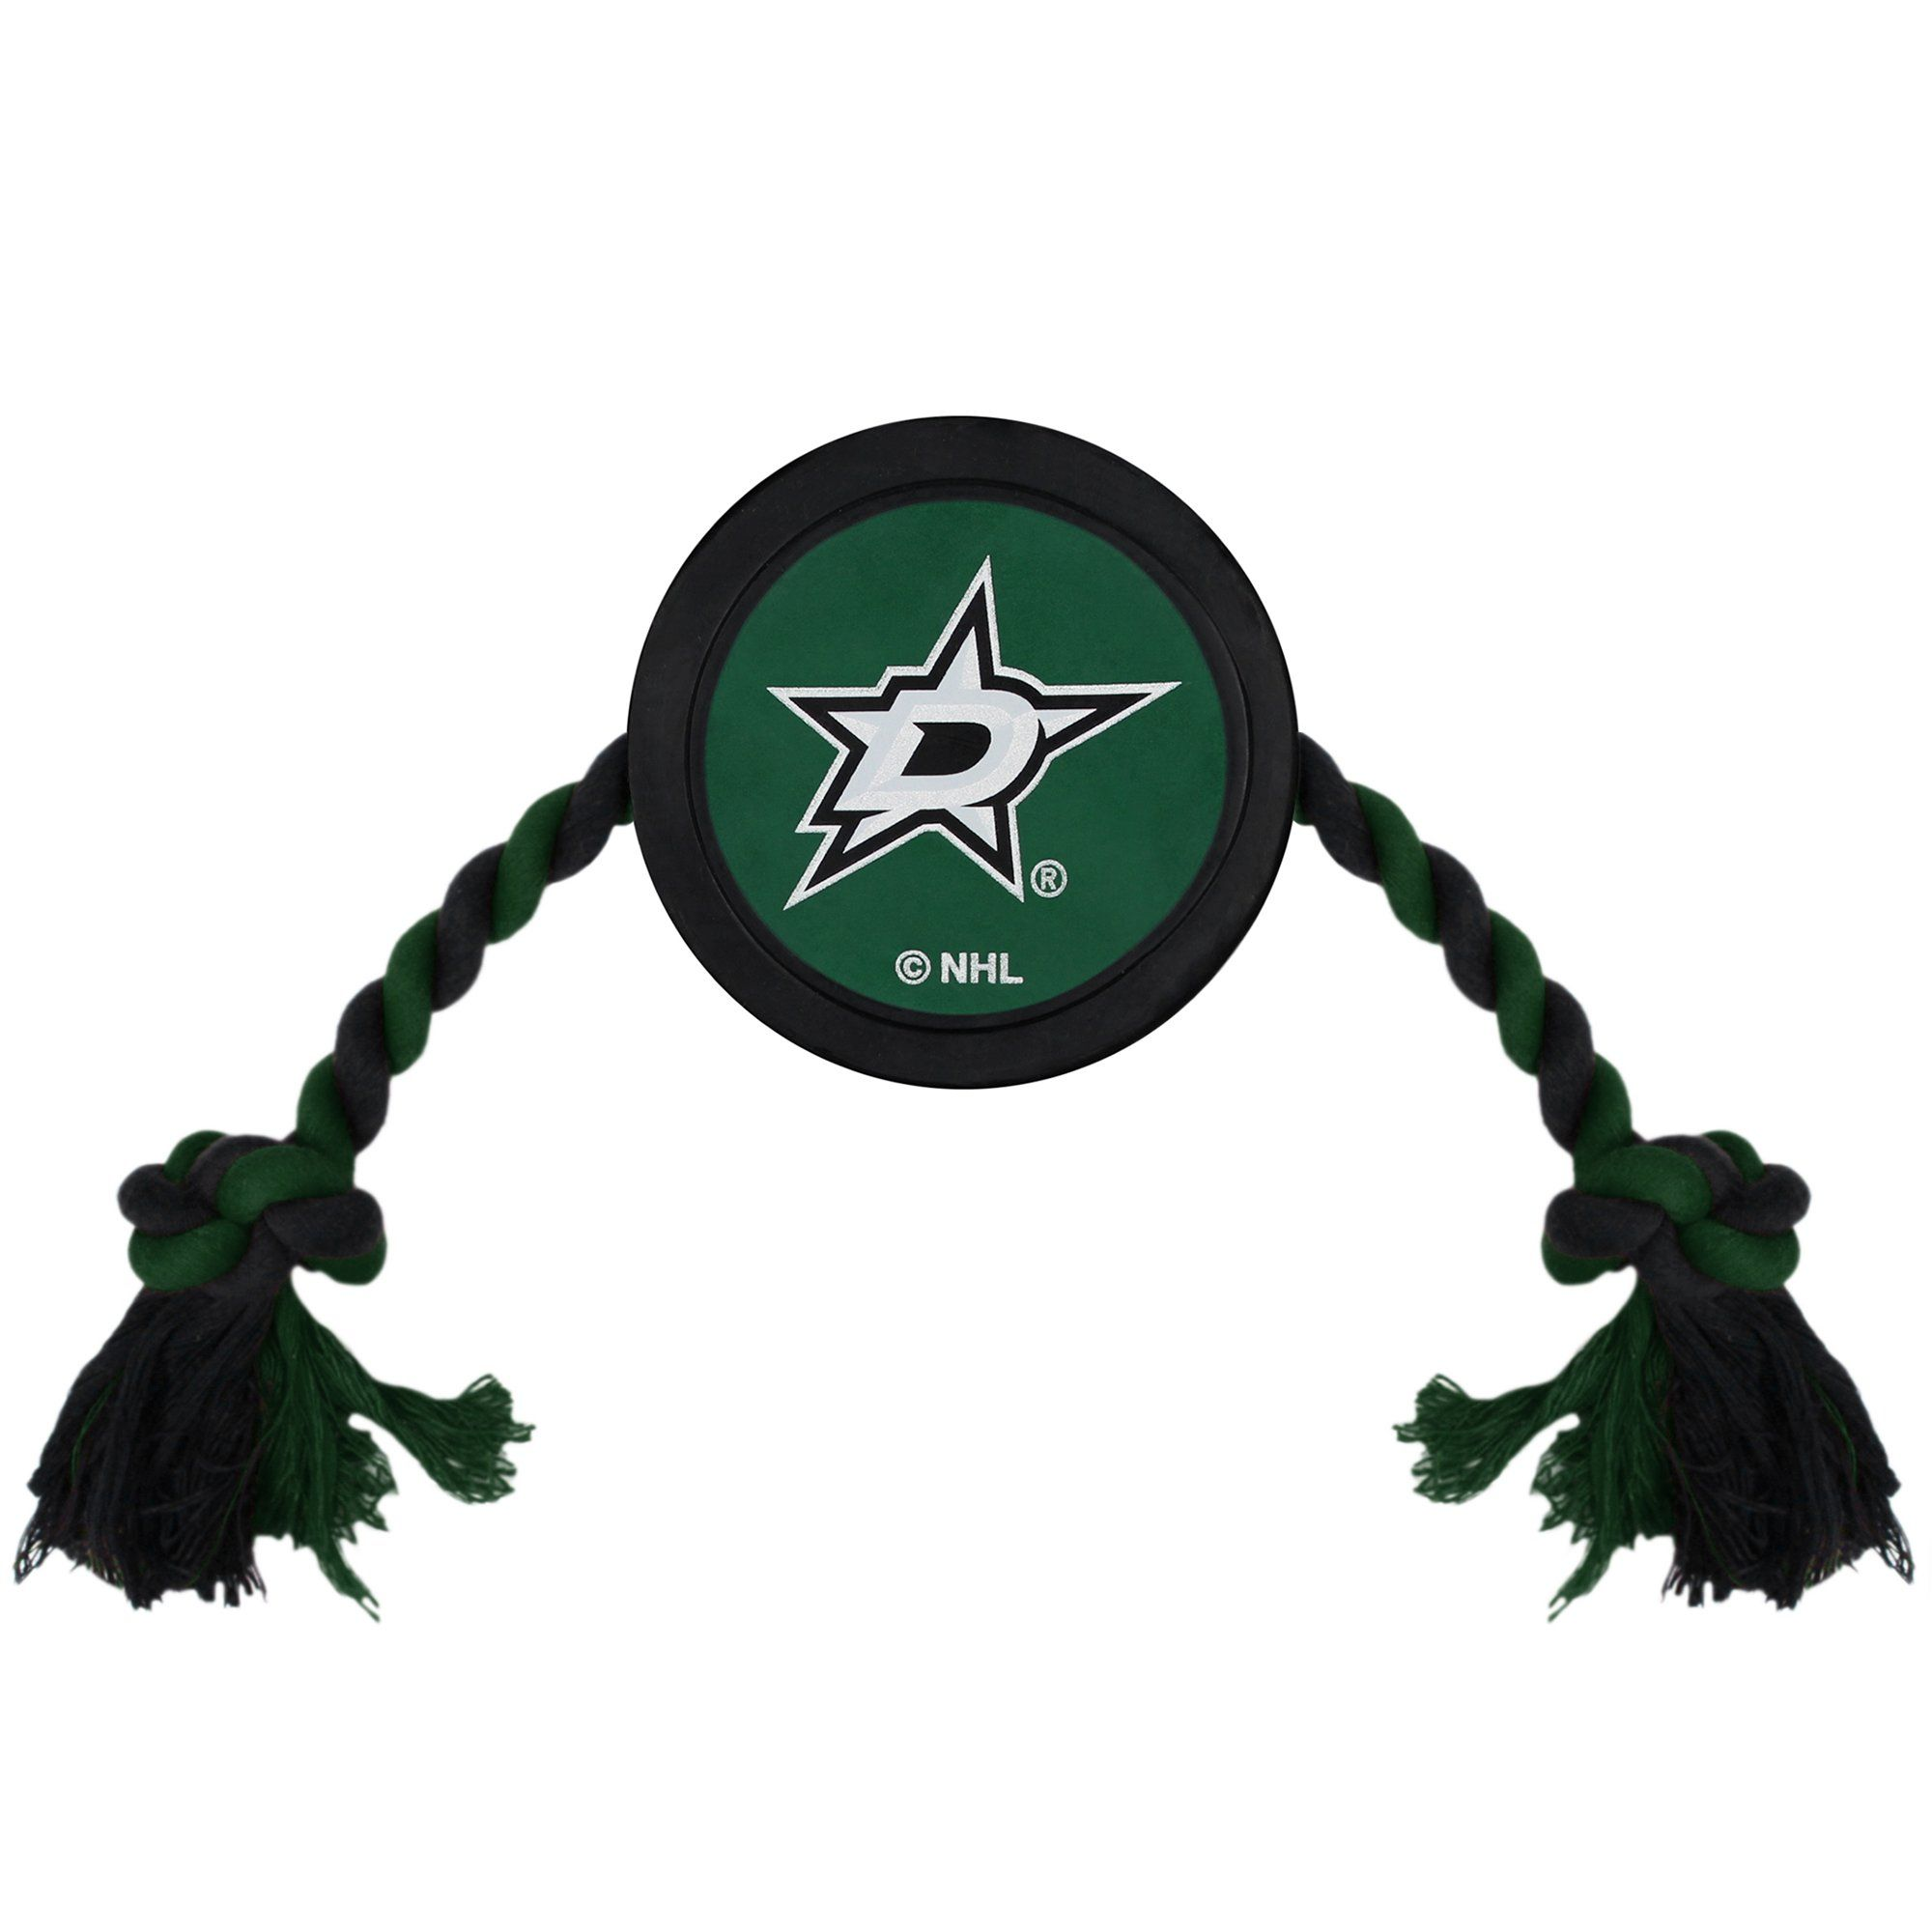 Pets First Dallas Stars Hockey Puck Toy for Dogs, XLarge